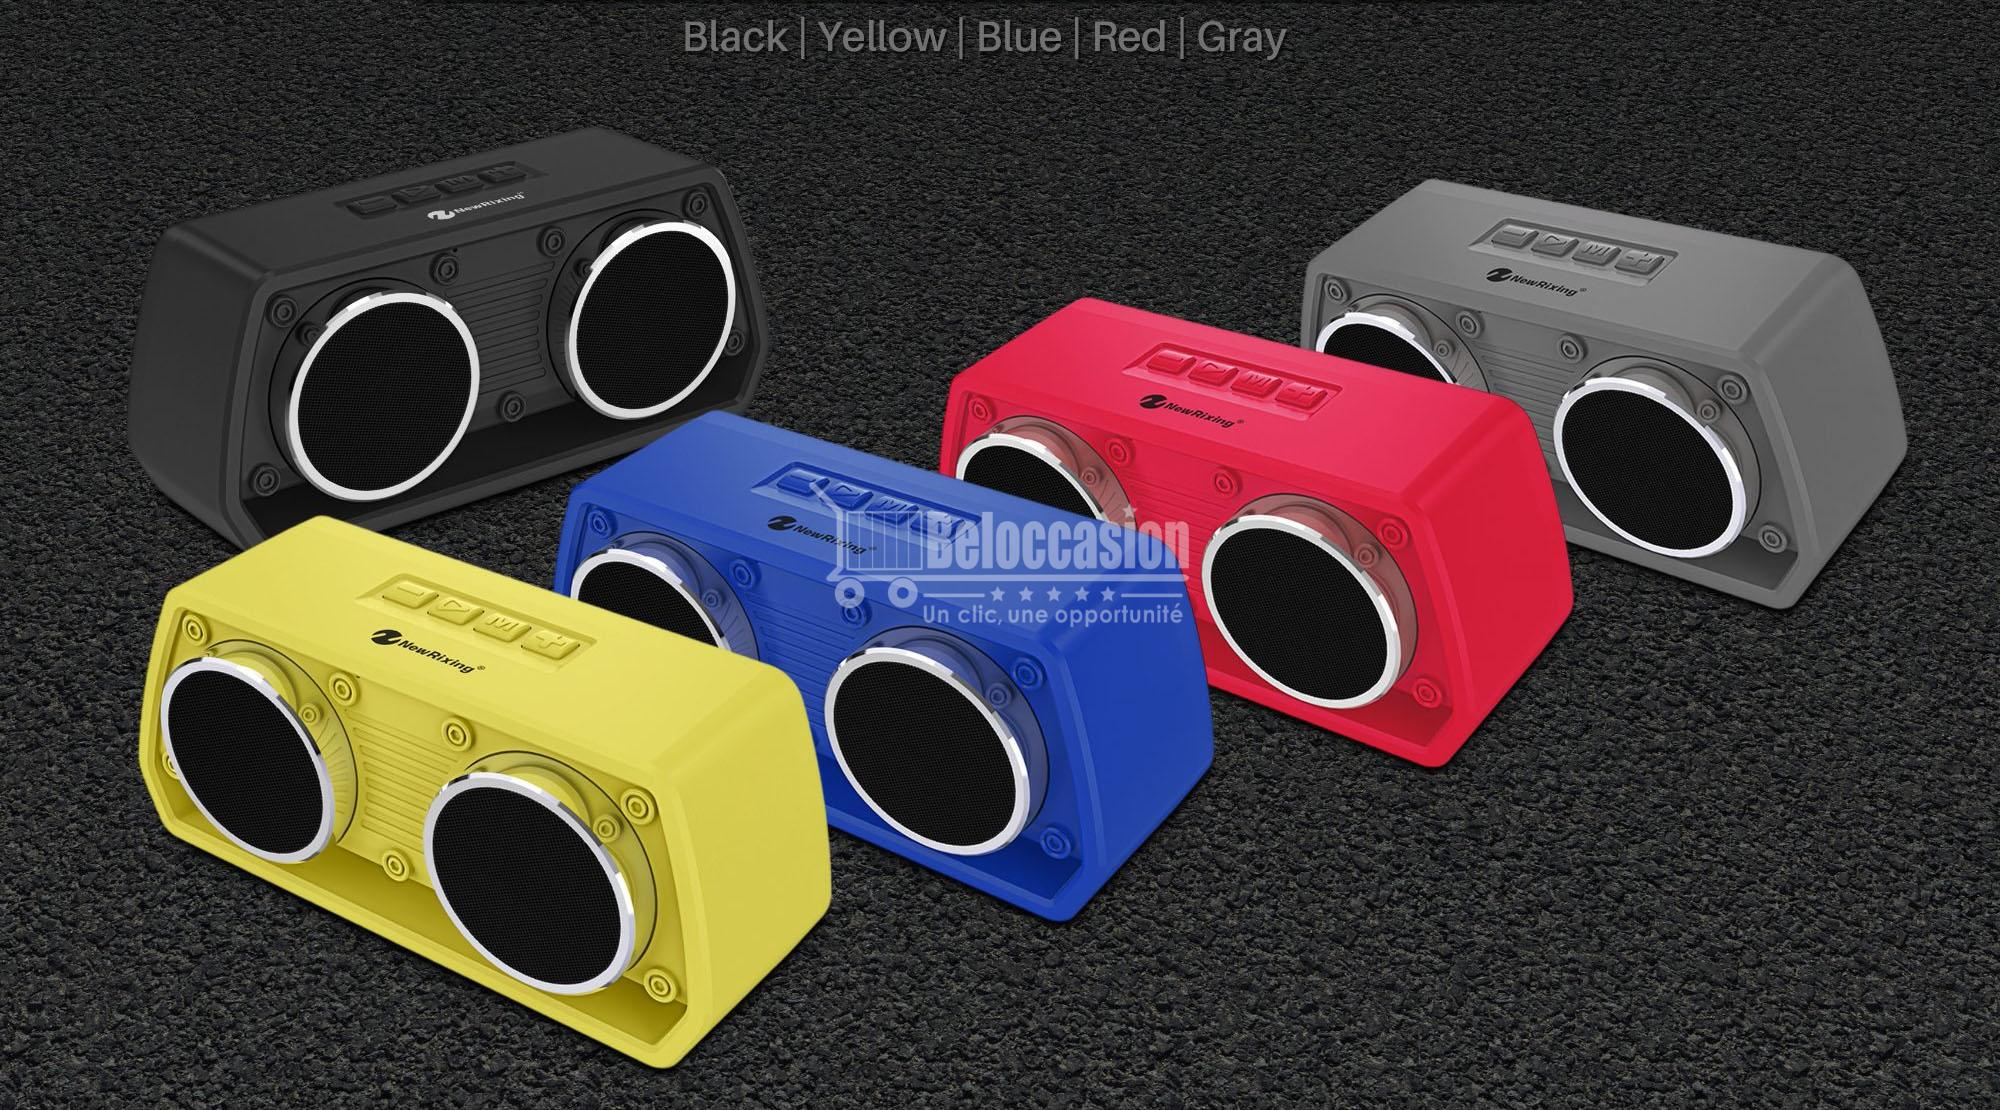 NewRixing NR-2024 Bluetooth Loudspeaker, Wireless Speakers Manufacturer, Sports Mini Speaker Exporters, Comfortable hand feeling, TWS function. beloccasion.com